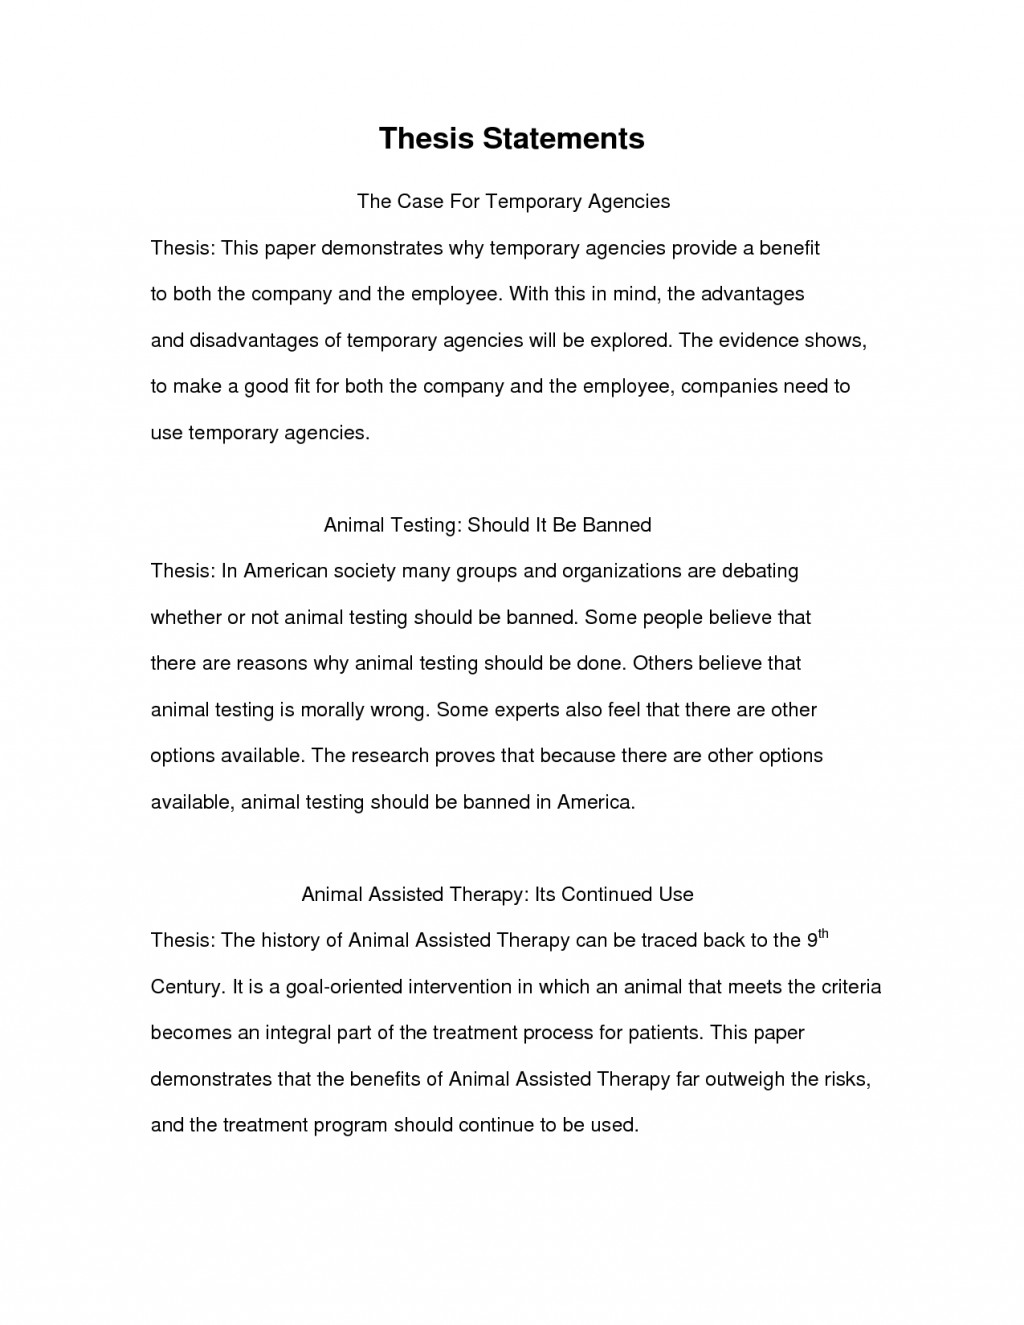 027 Thesis Statement For Research Paper On Abortion Breast Cancer Essay Template Bfnmxz7cfvs Of In An Excellent Example Blood Papers Sponsor Form Large